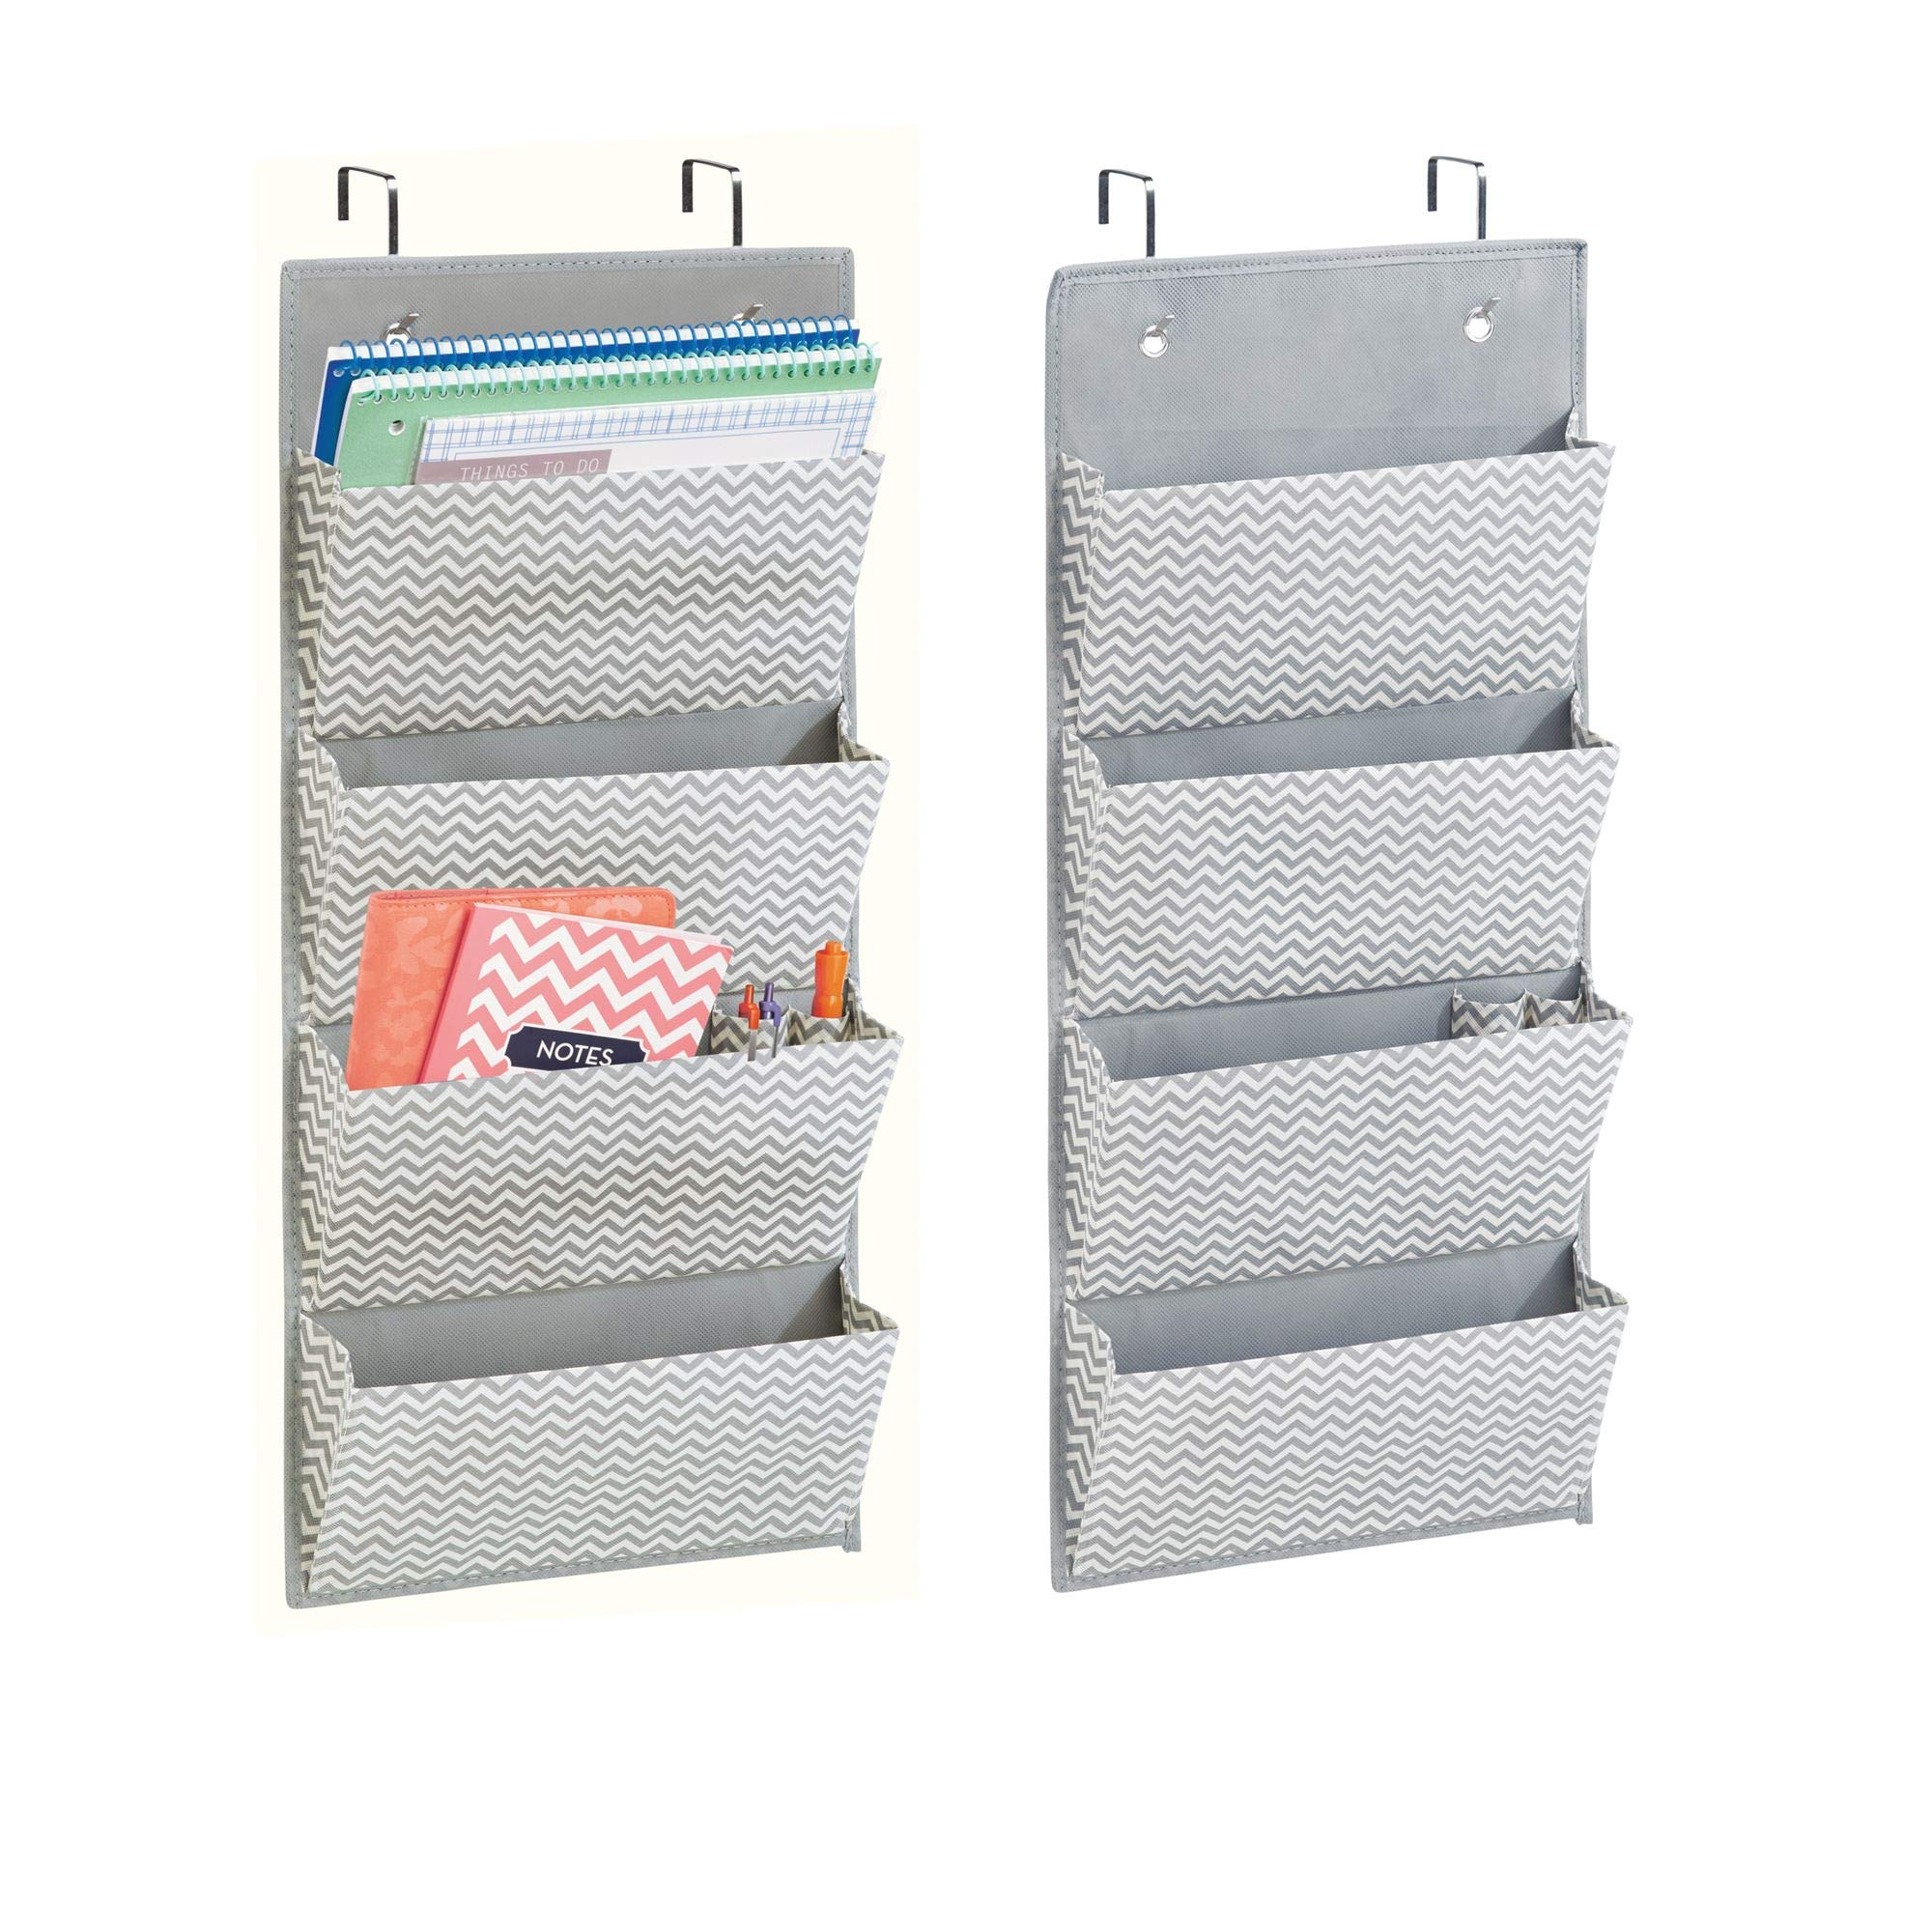 mDesign Hanging Fabric Office Supplies Storage Organizer for Notebooks, Planners, File Folders - Pack of 2, 4 Pockets, Gray/Cream